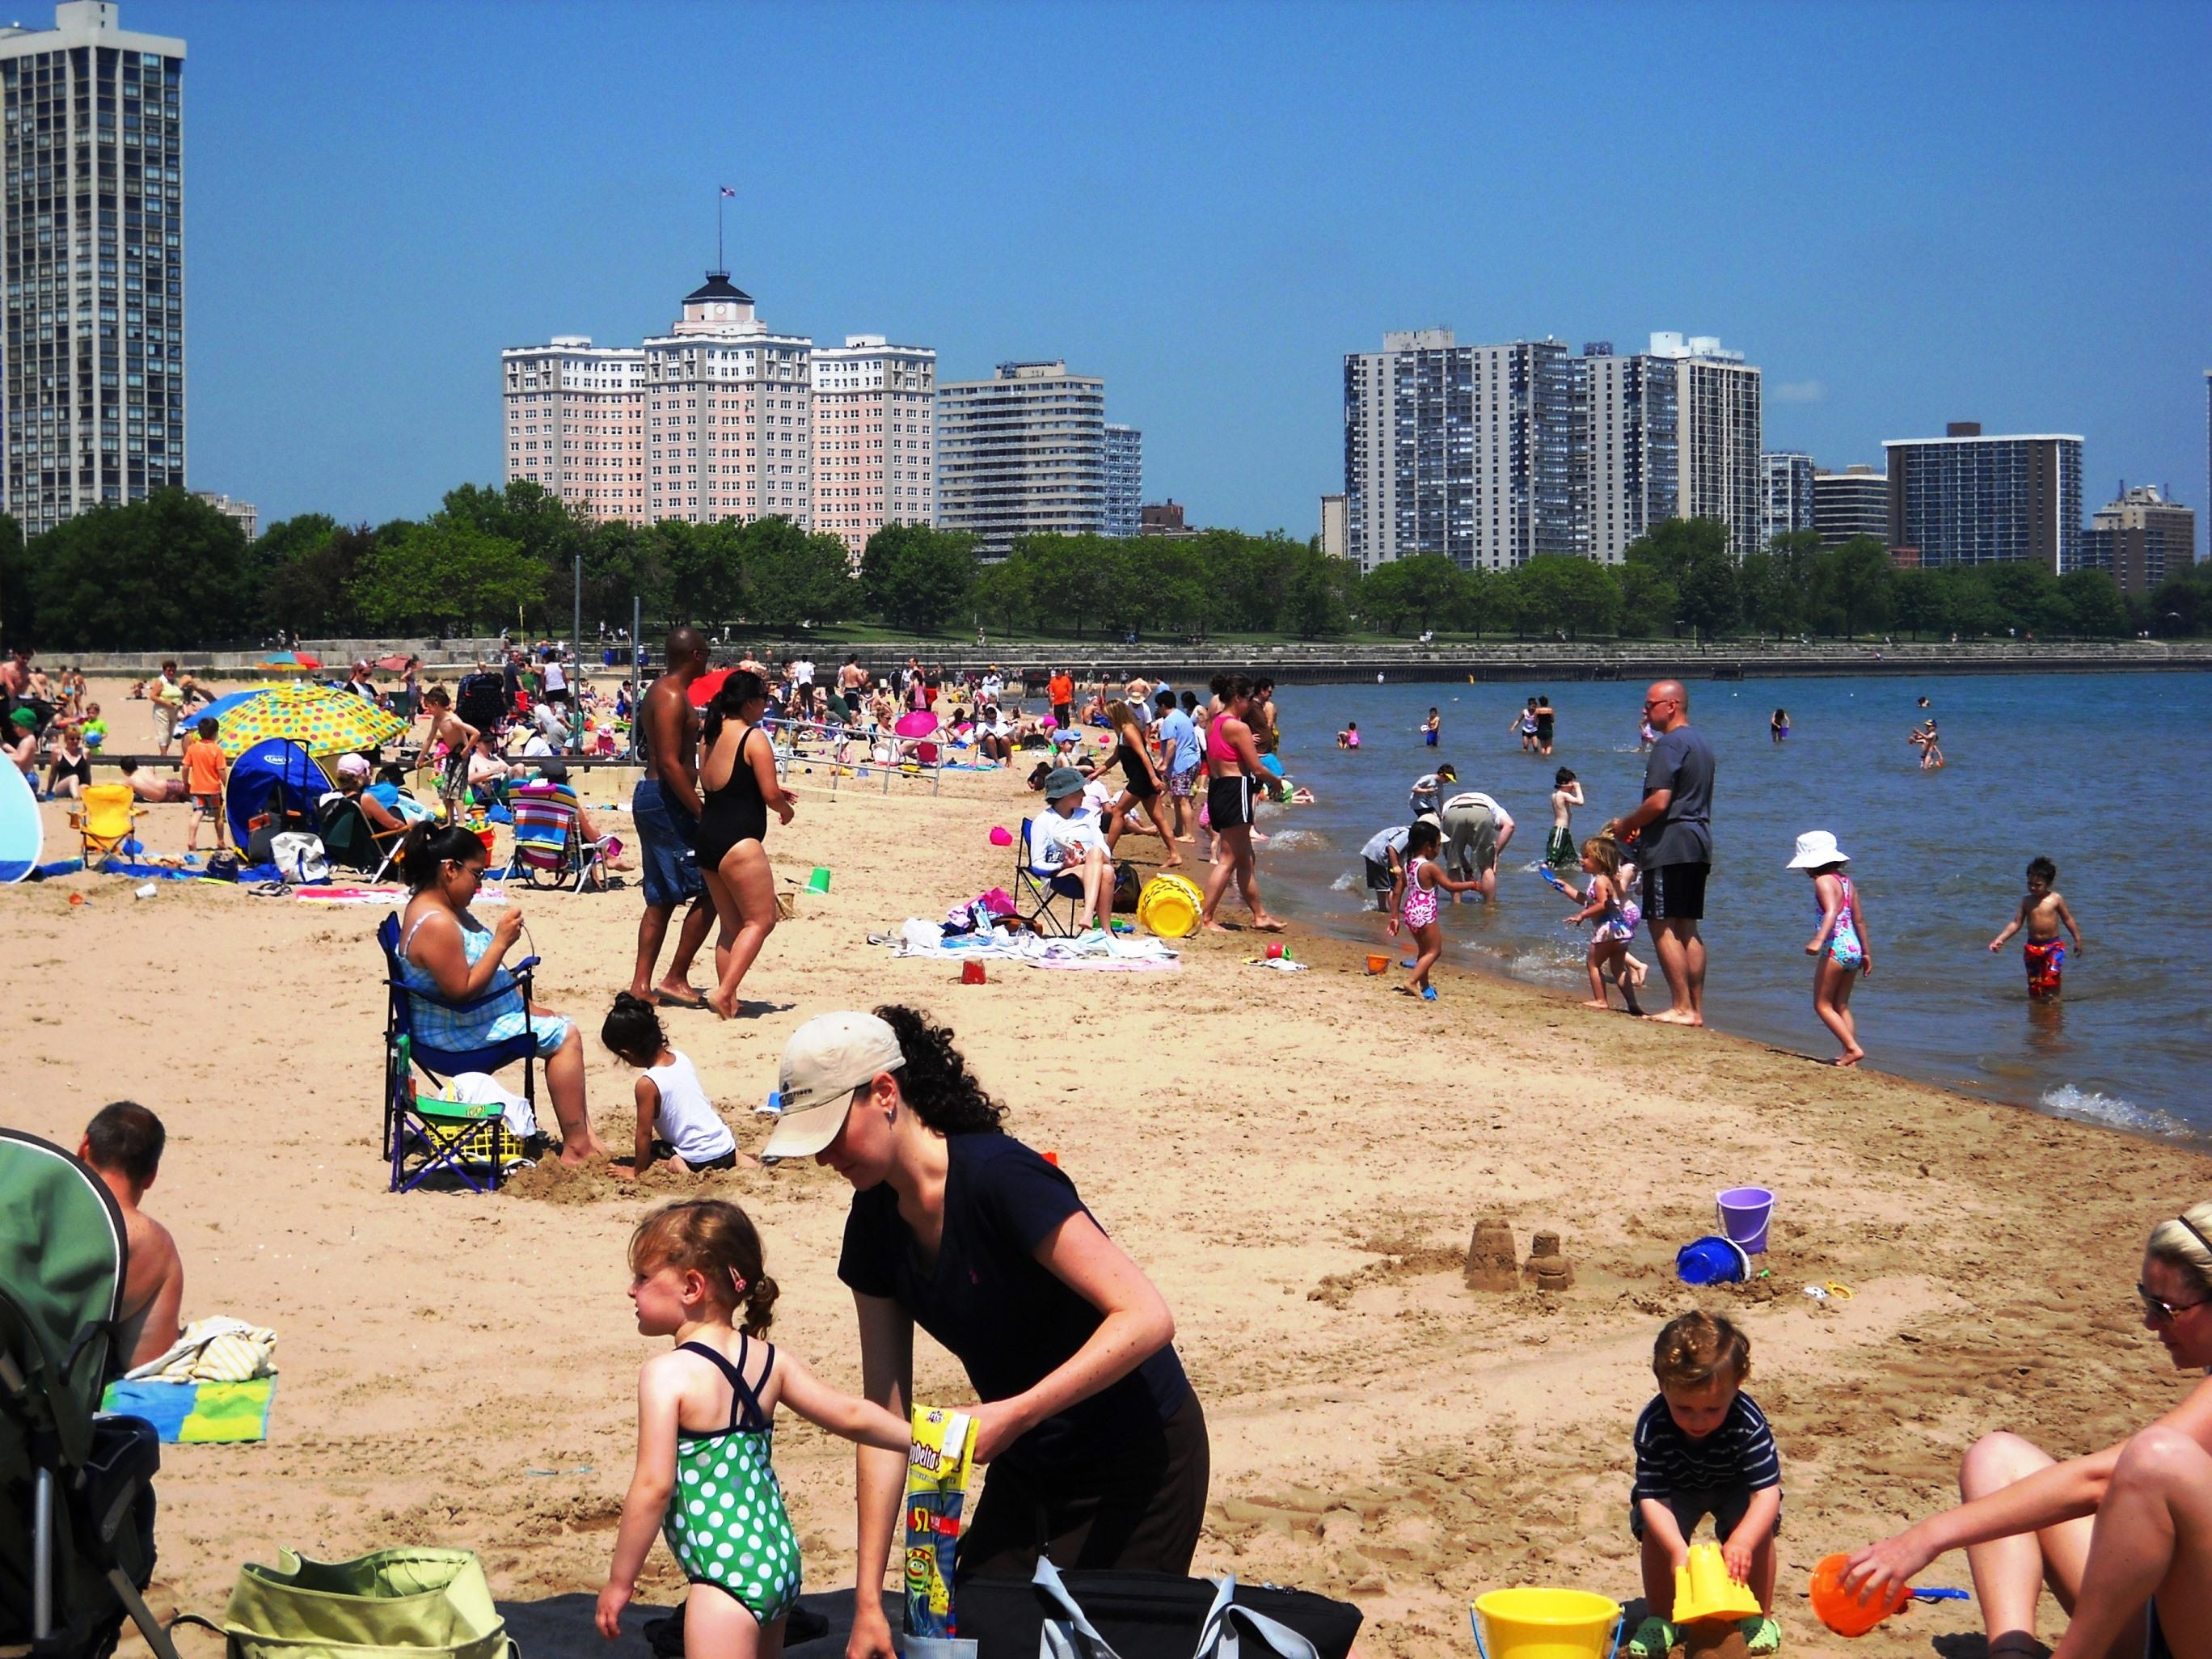 10 Things About Chicago Beaches You Might Not Know